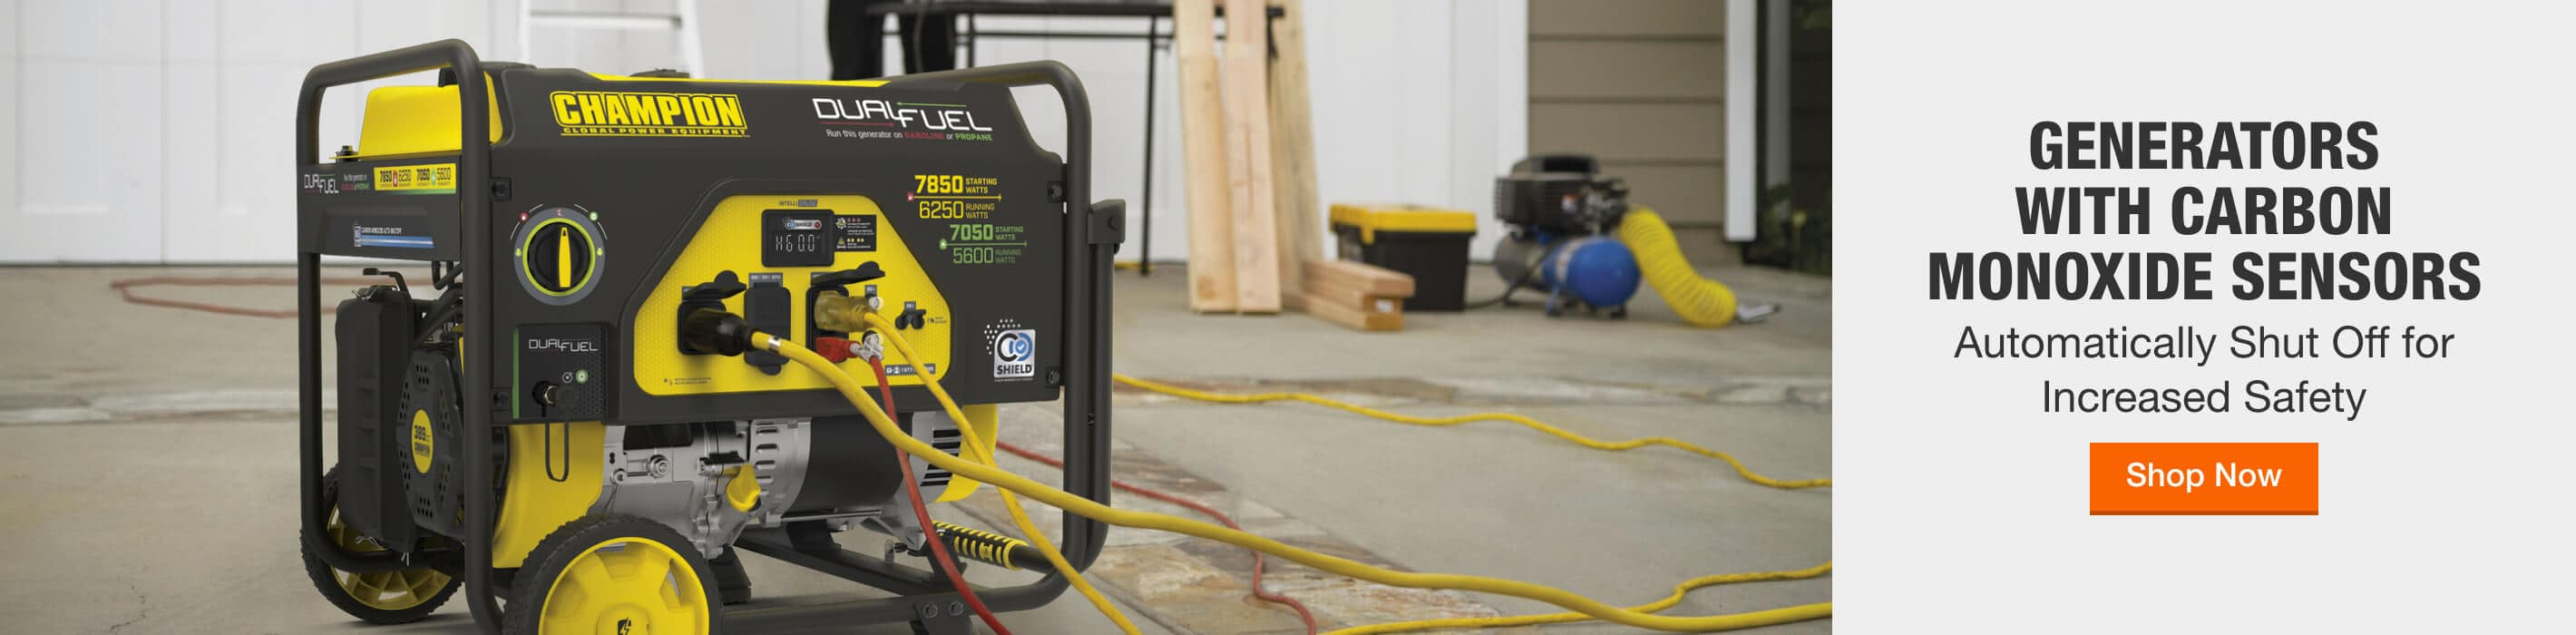 Generators with Carbon Monoxide Sensors Automatically Shut Off for Increased Safety Shop Now